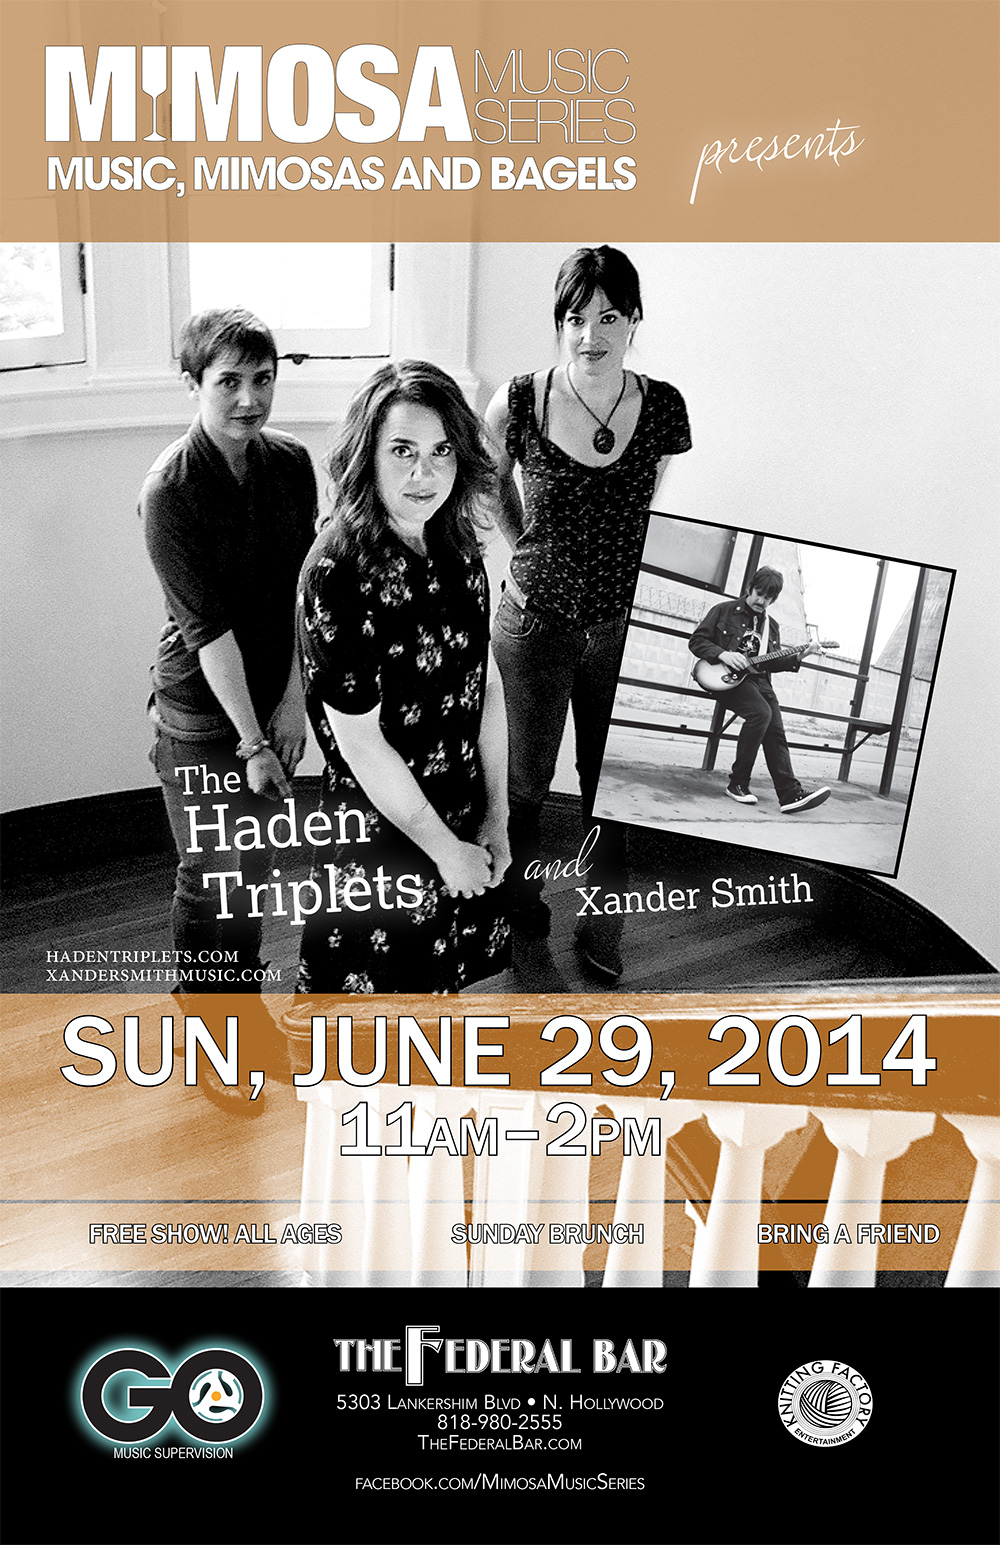 XANDER SMITH WITH THE HADEN TRIPLETS SHOW THIS SUNDAY!